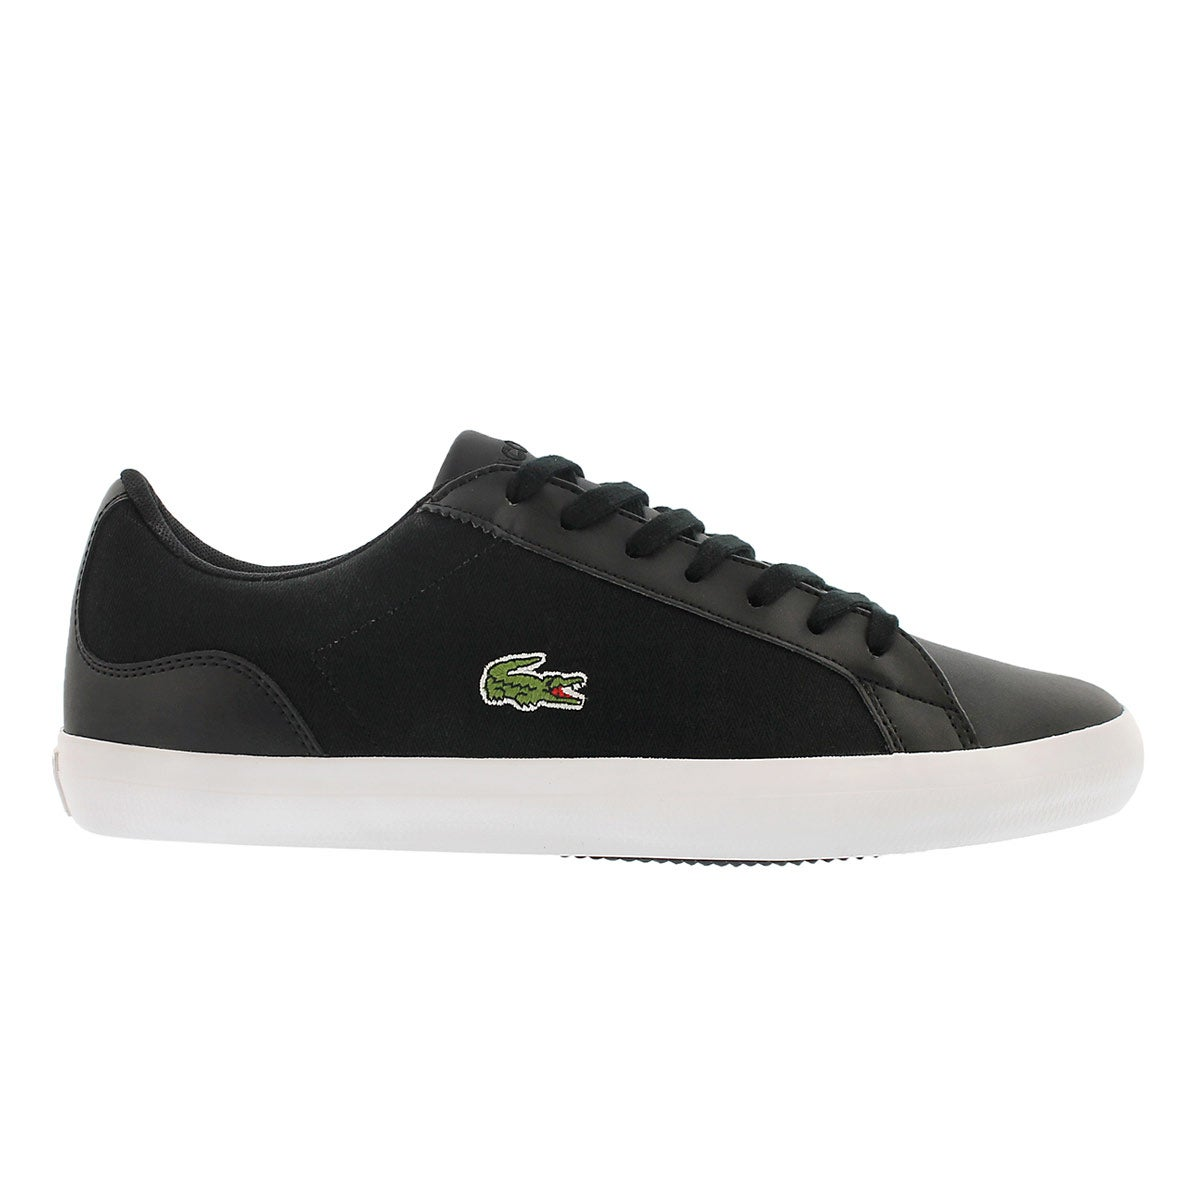 Mns Lerond 316 black lace up sneaker